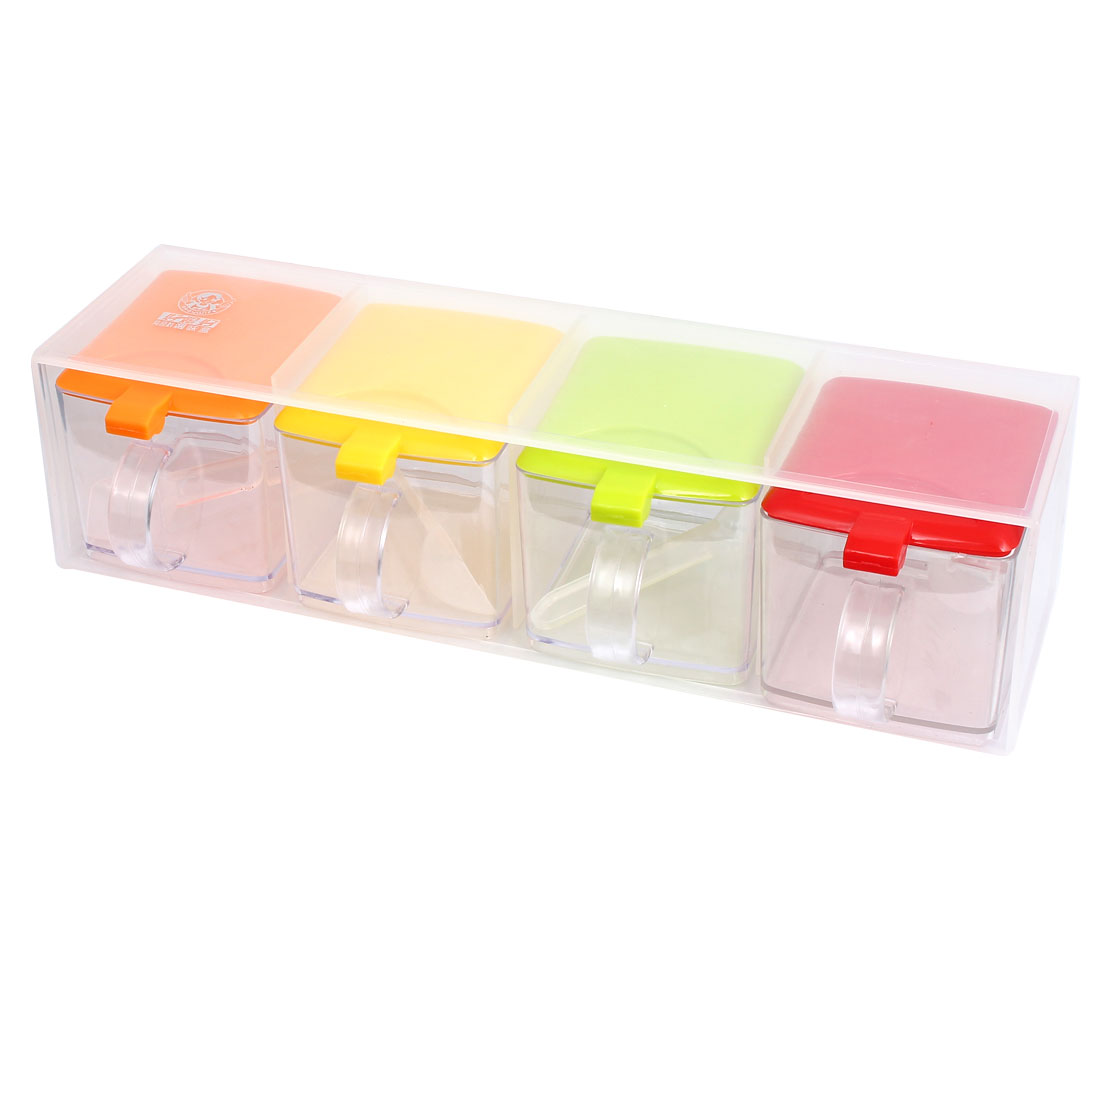 Plastic 4 Compartments Condiment Holder Dispenser Tray Assorted Color w Spoons